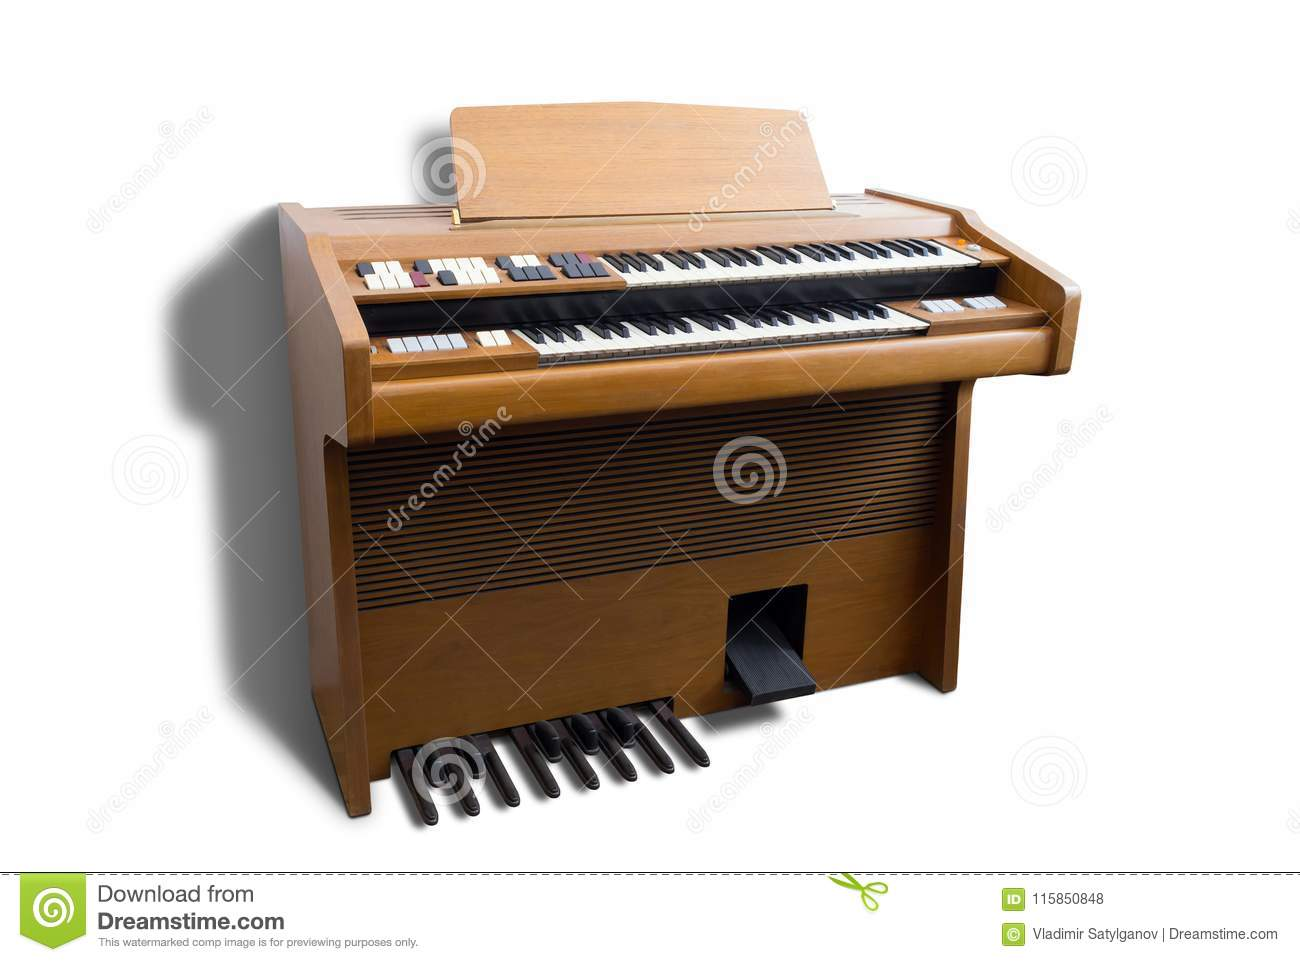 Old-fashioned double-keyboard electric organ isolated on white background